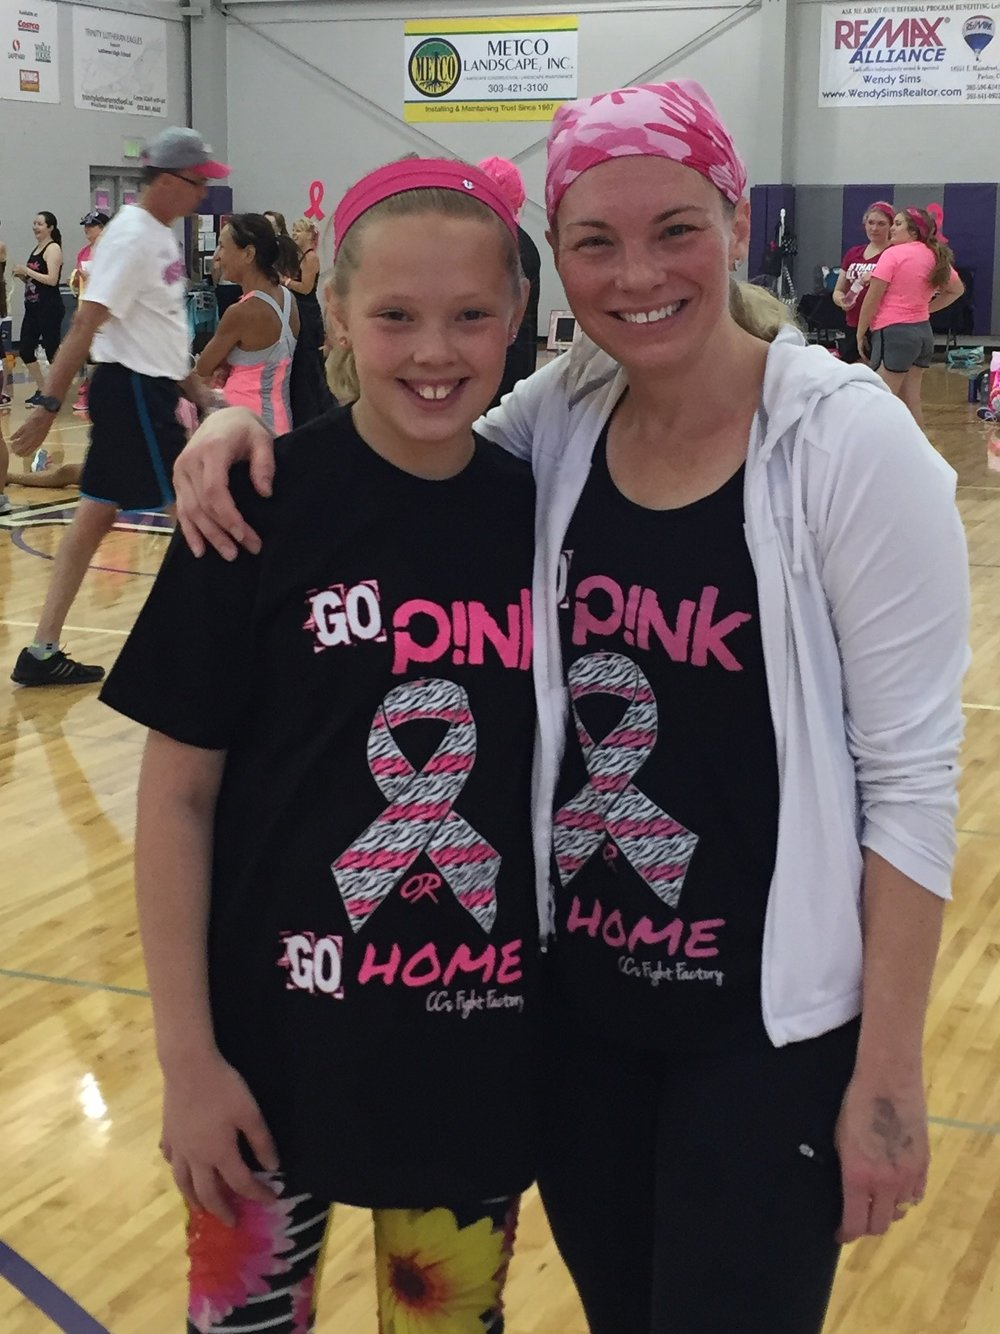 Mother-daughter date: Dancing for Breast Cancer Research